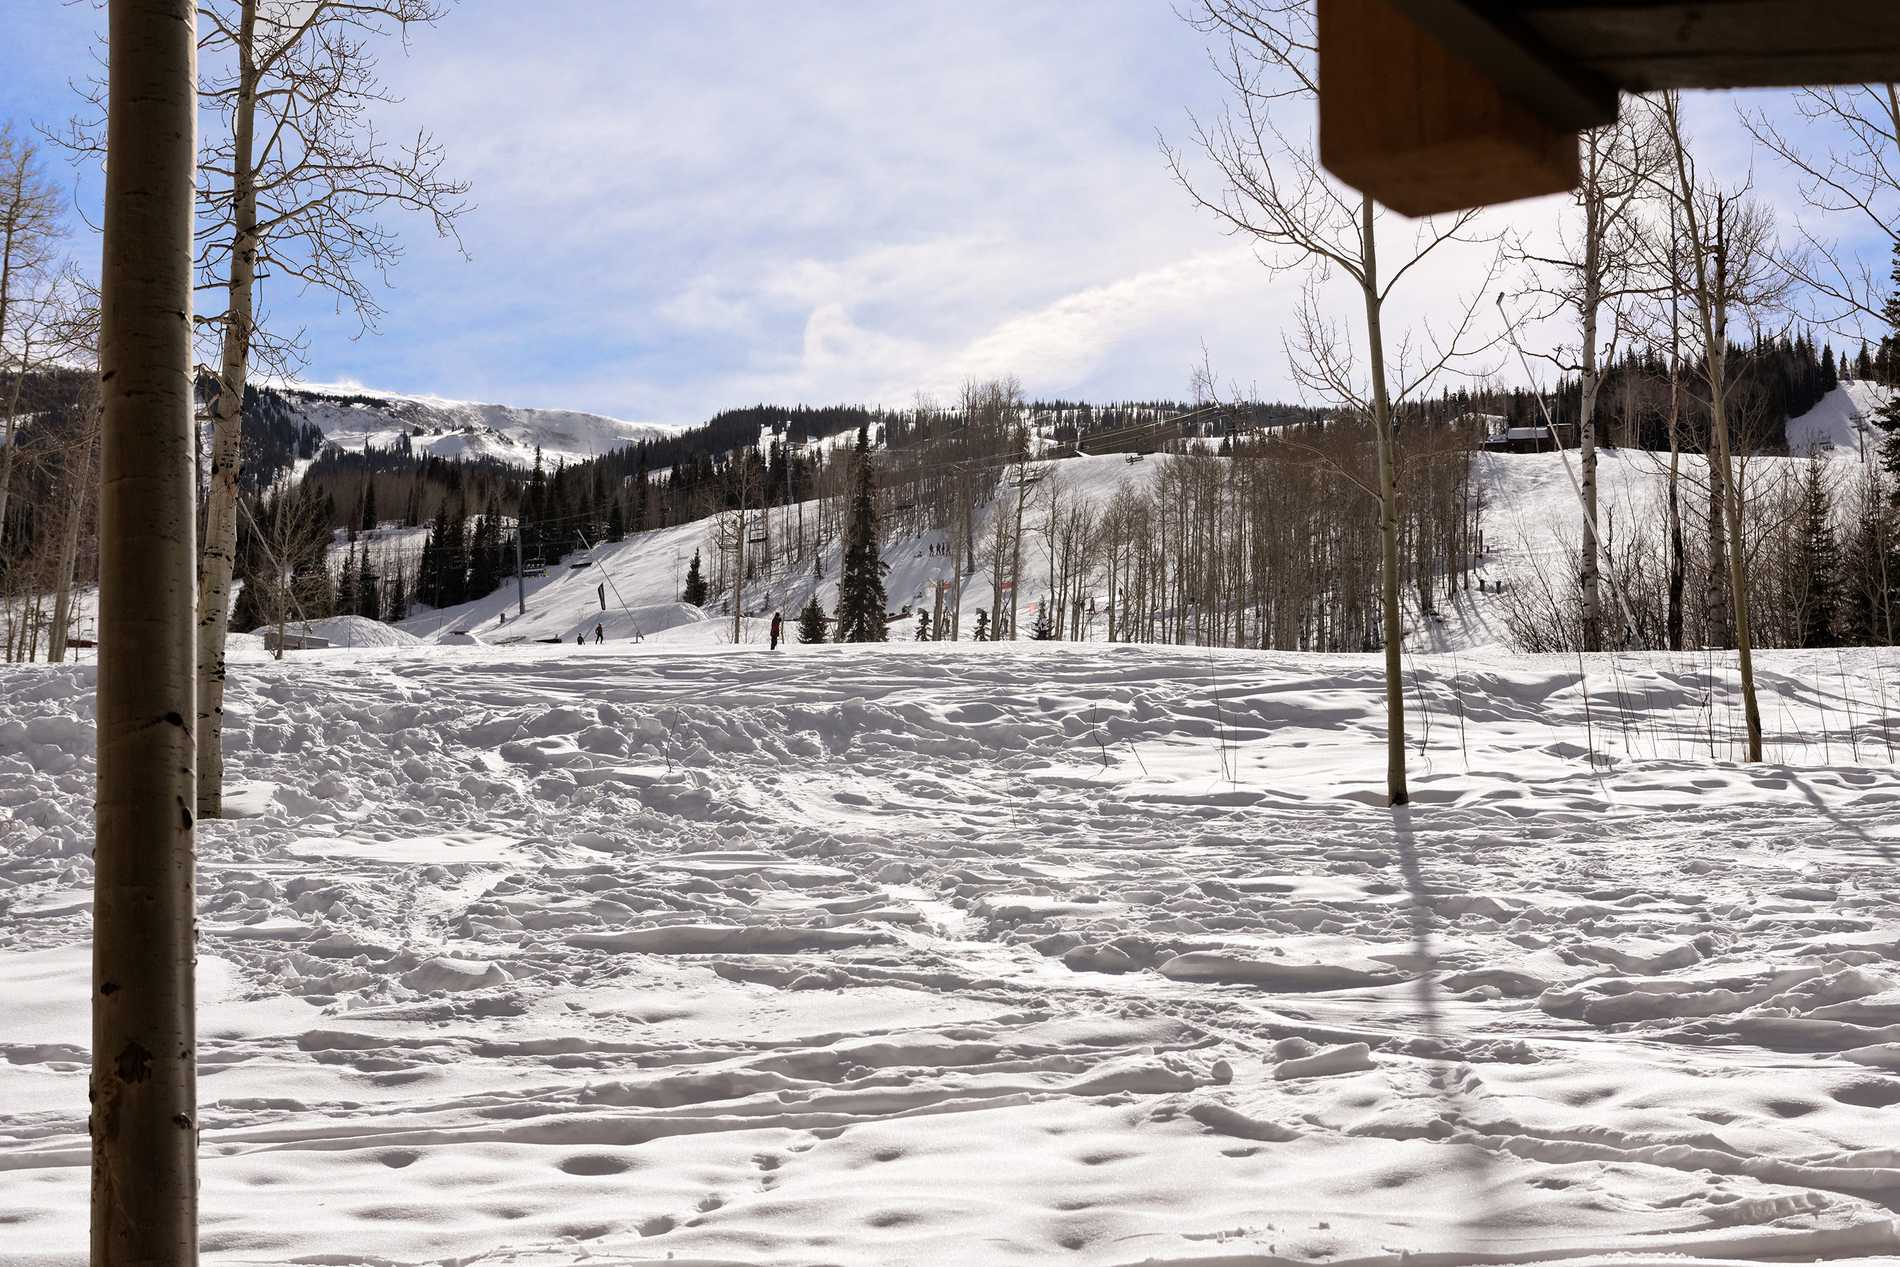 855 Carriage Way Slope 207 Snowmass Village Photo 1